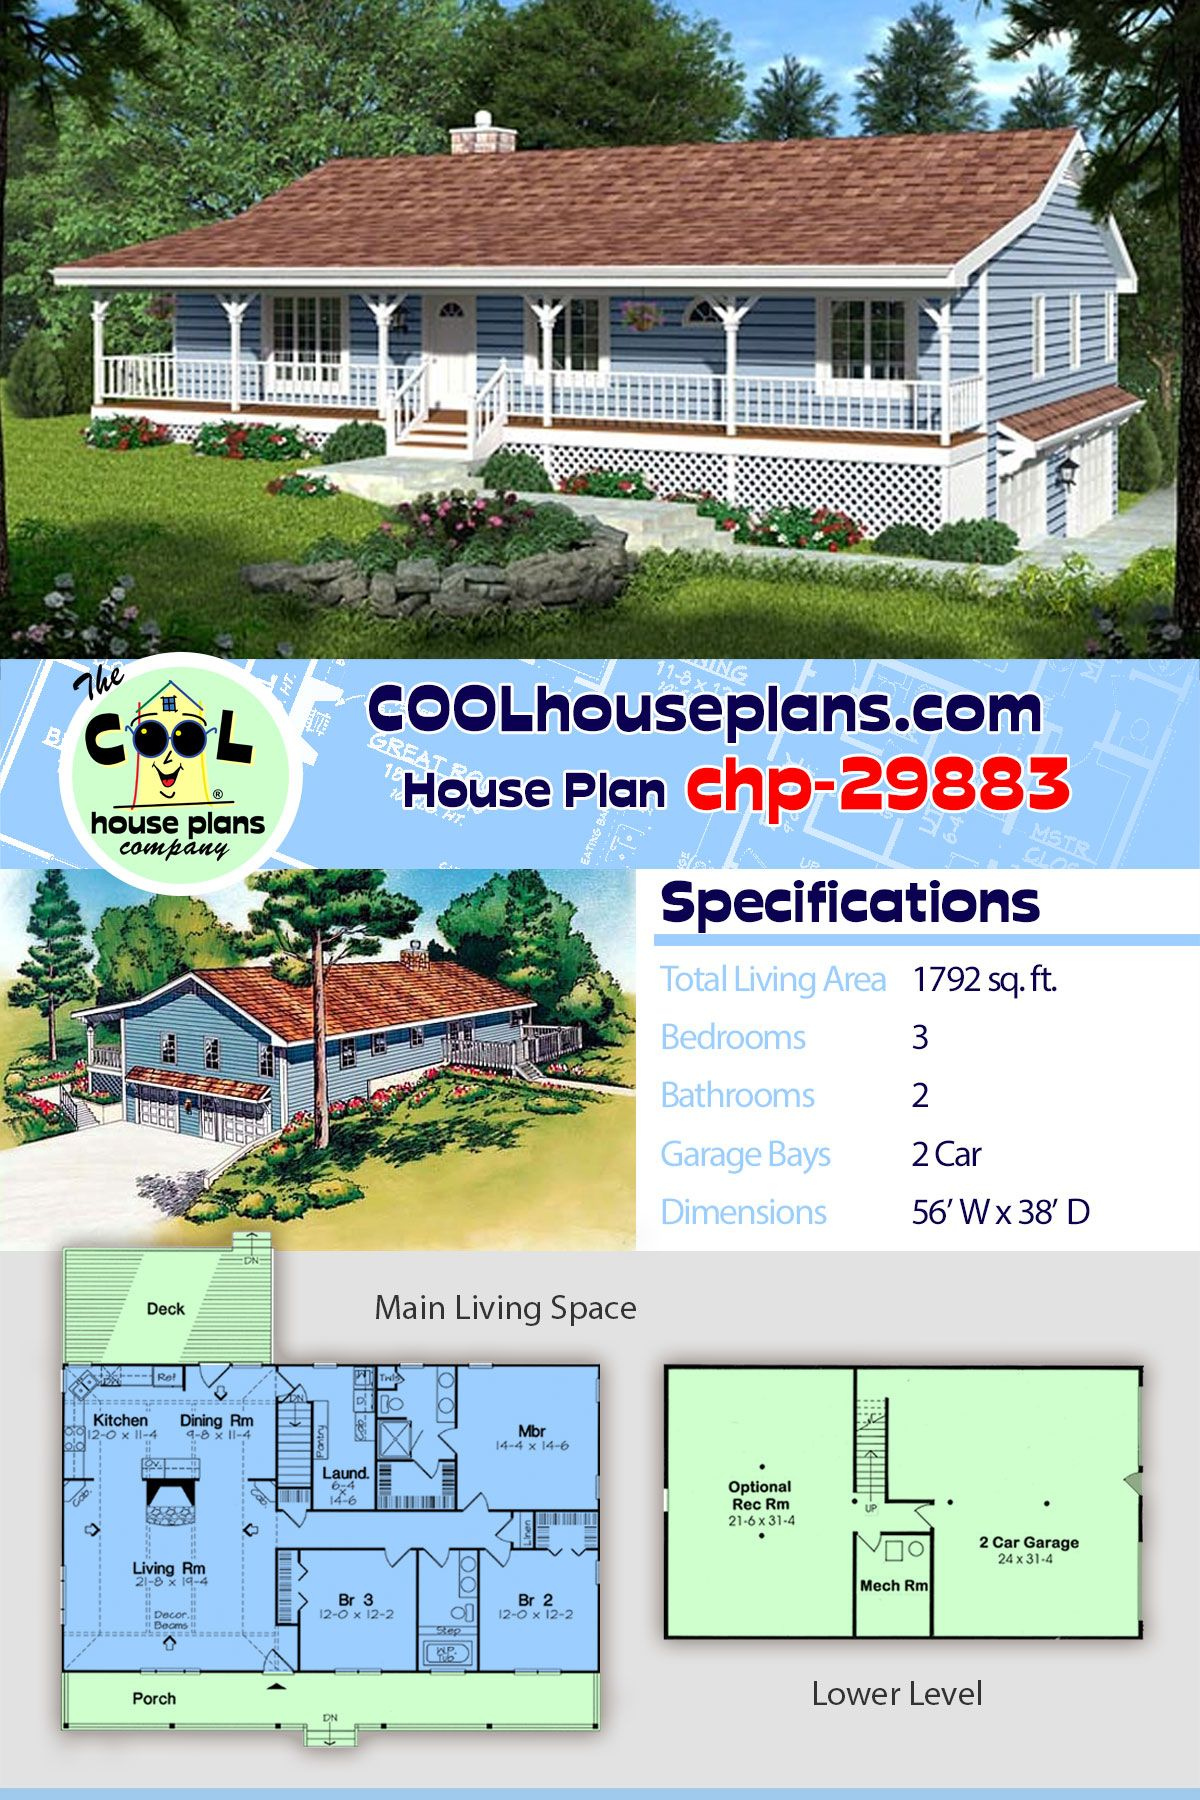 This economical 3-bedroom 2-bathroom ranch house plan can ... on one-bedroom cottage home plans, 5 bed home plans, new country home plans, trailer home plans, hudson home plans, classic home plans, white home plans, warehouse home plans, survival home plans, handicap home plans, standard home plans, back split home plans, cargo home plans, bristol home plans, three story home plans, 28 x 40 home plans, v-shaped home plans, franklin home plans, mercury home plans, sears home plans,